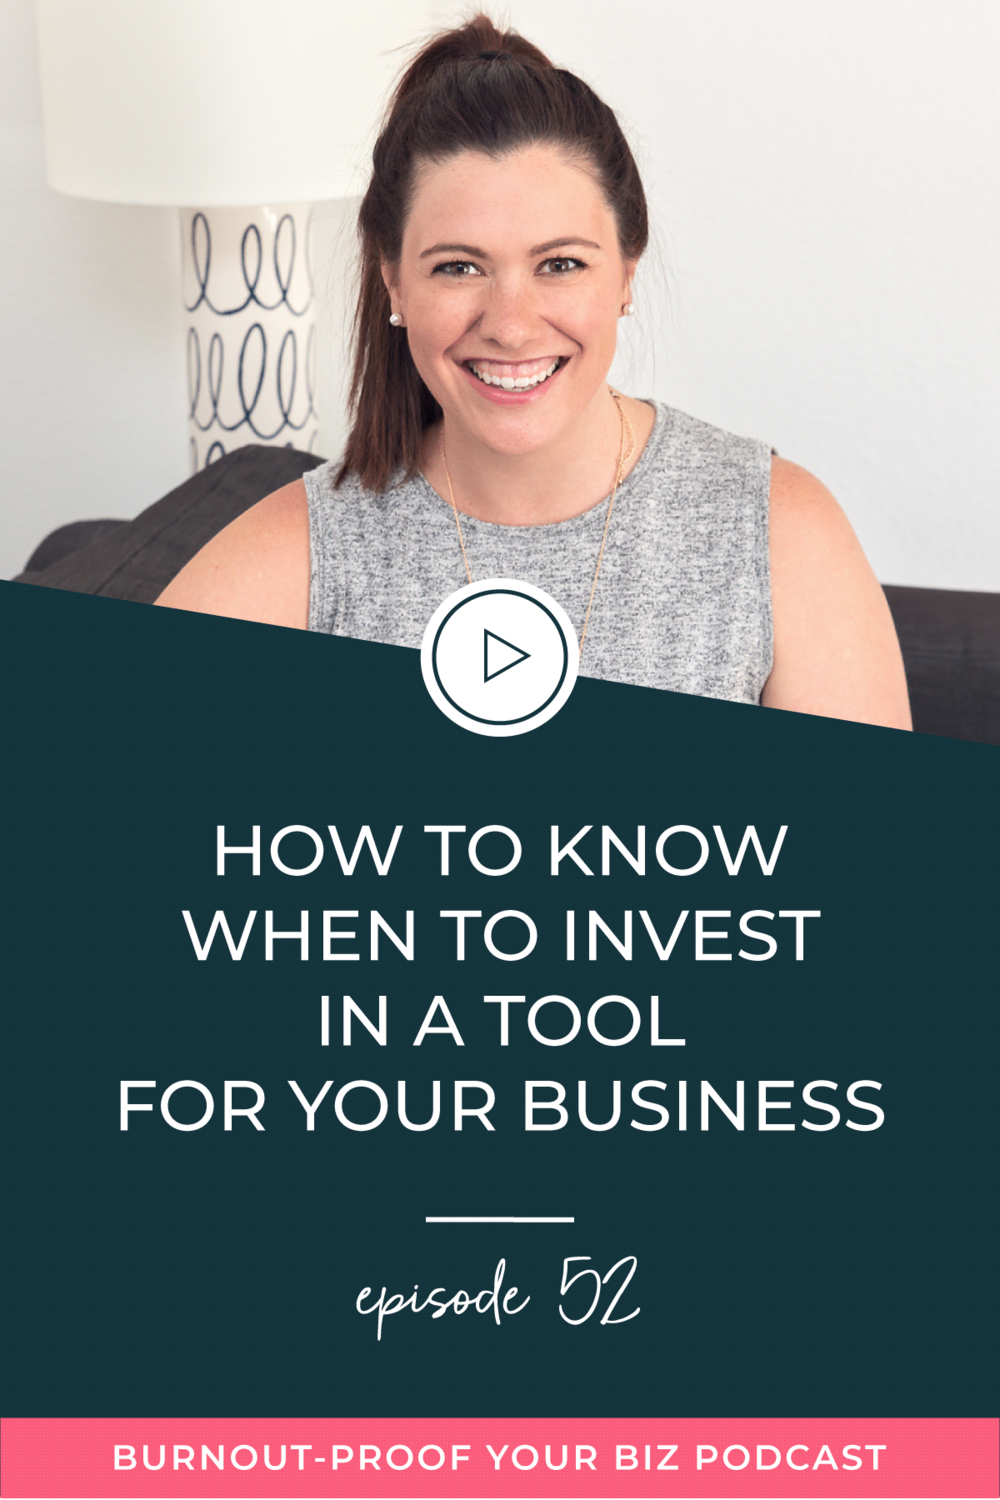 Burnout-Proof Your Biz Podcast with Chelsea B Foster | Episode 052 - How to Know When to Invest In a Tool for Your Business | Learn how to run your biz and live your dream life on your own terms without the fear of burnout.  Business Coach | Workflow & Productivity Specialist | Free vs. Paid Apps for Your Business | Free Trials + When to Upgrade | Investing in Your Business | Growth Strategy | Overwhelmed | Stressed-out | Journaling Activity | Creative Entrepreneur | Creative Influencer | Productivity | Dream life | Freedom Lifestyle | Having a business that supports your dream life |